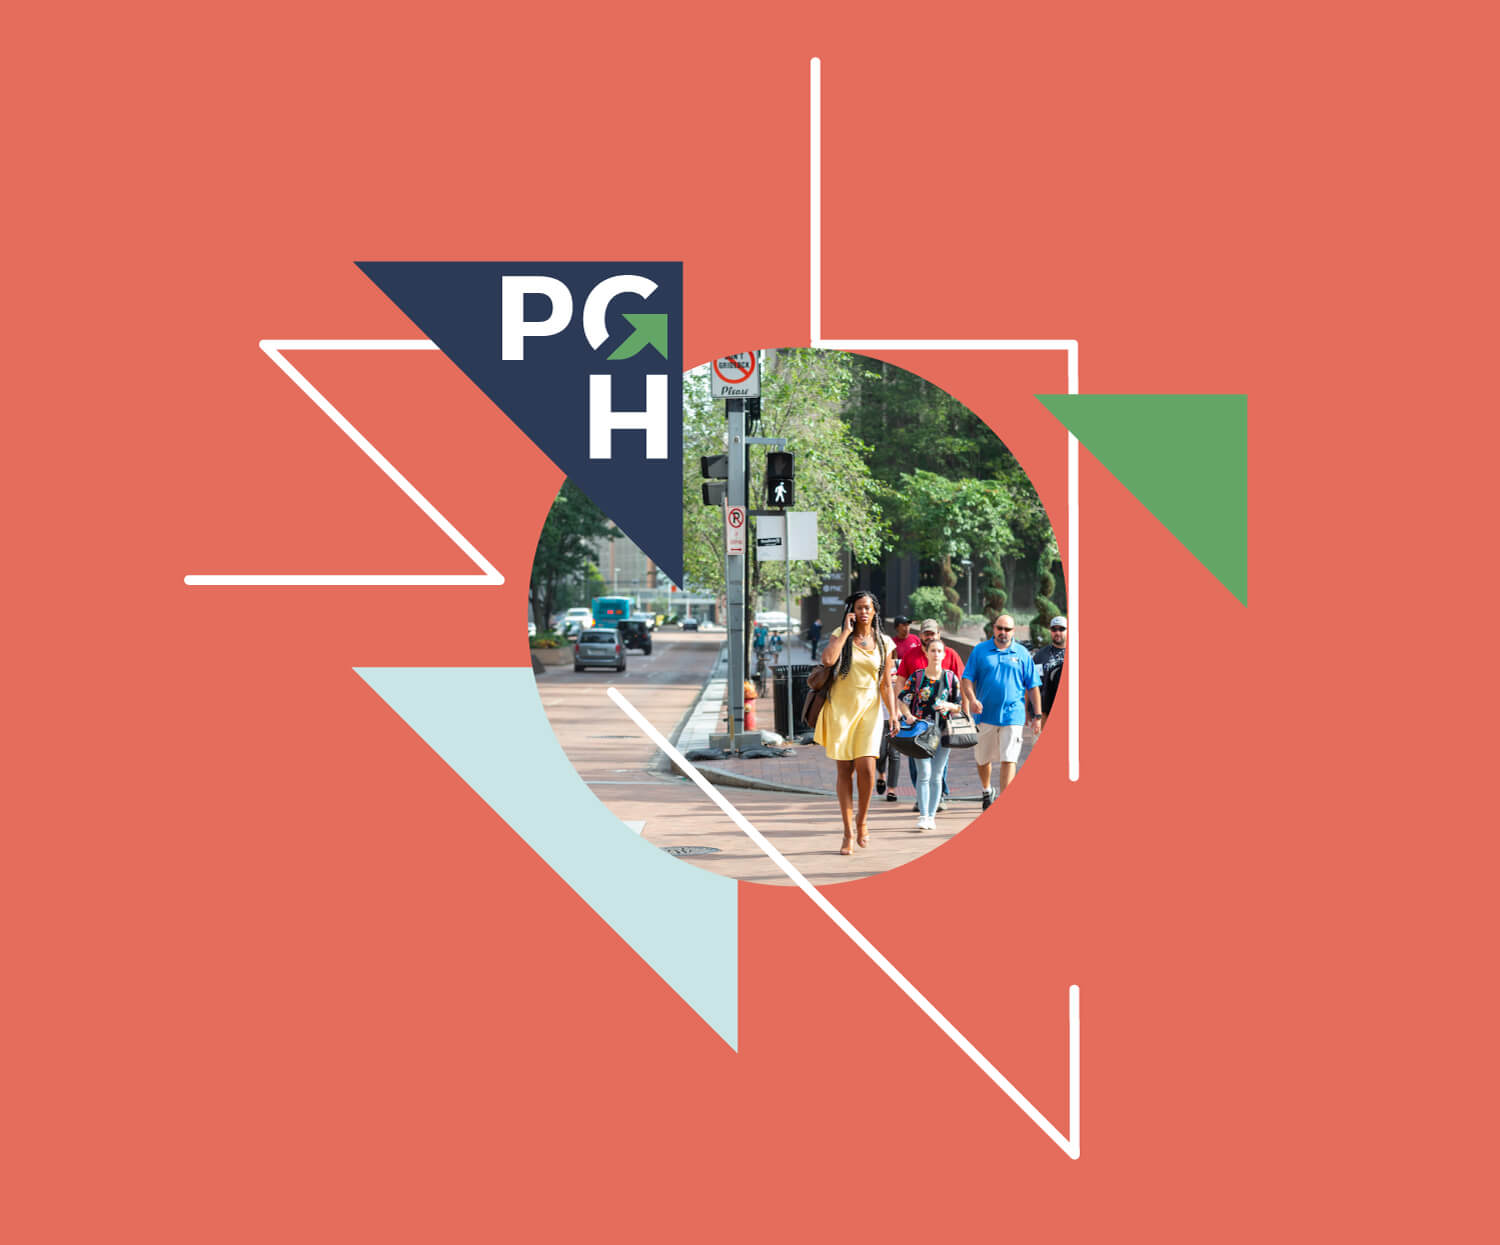 A PGH logo surrounded by branded graphics and an image of people walking downtown.